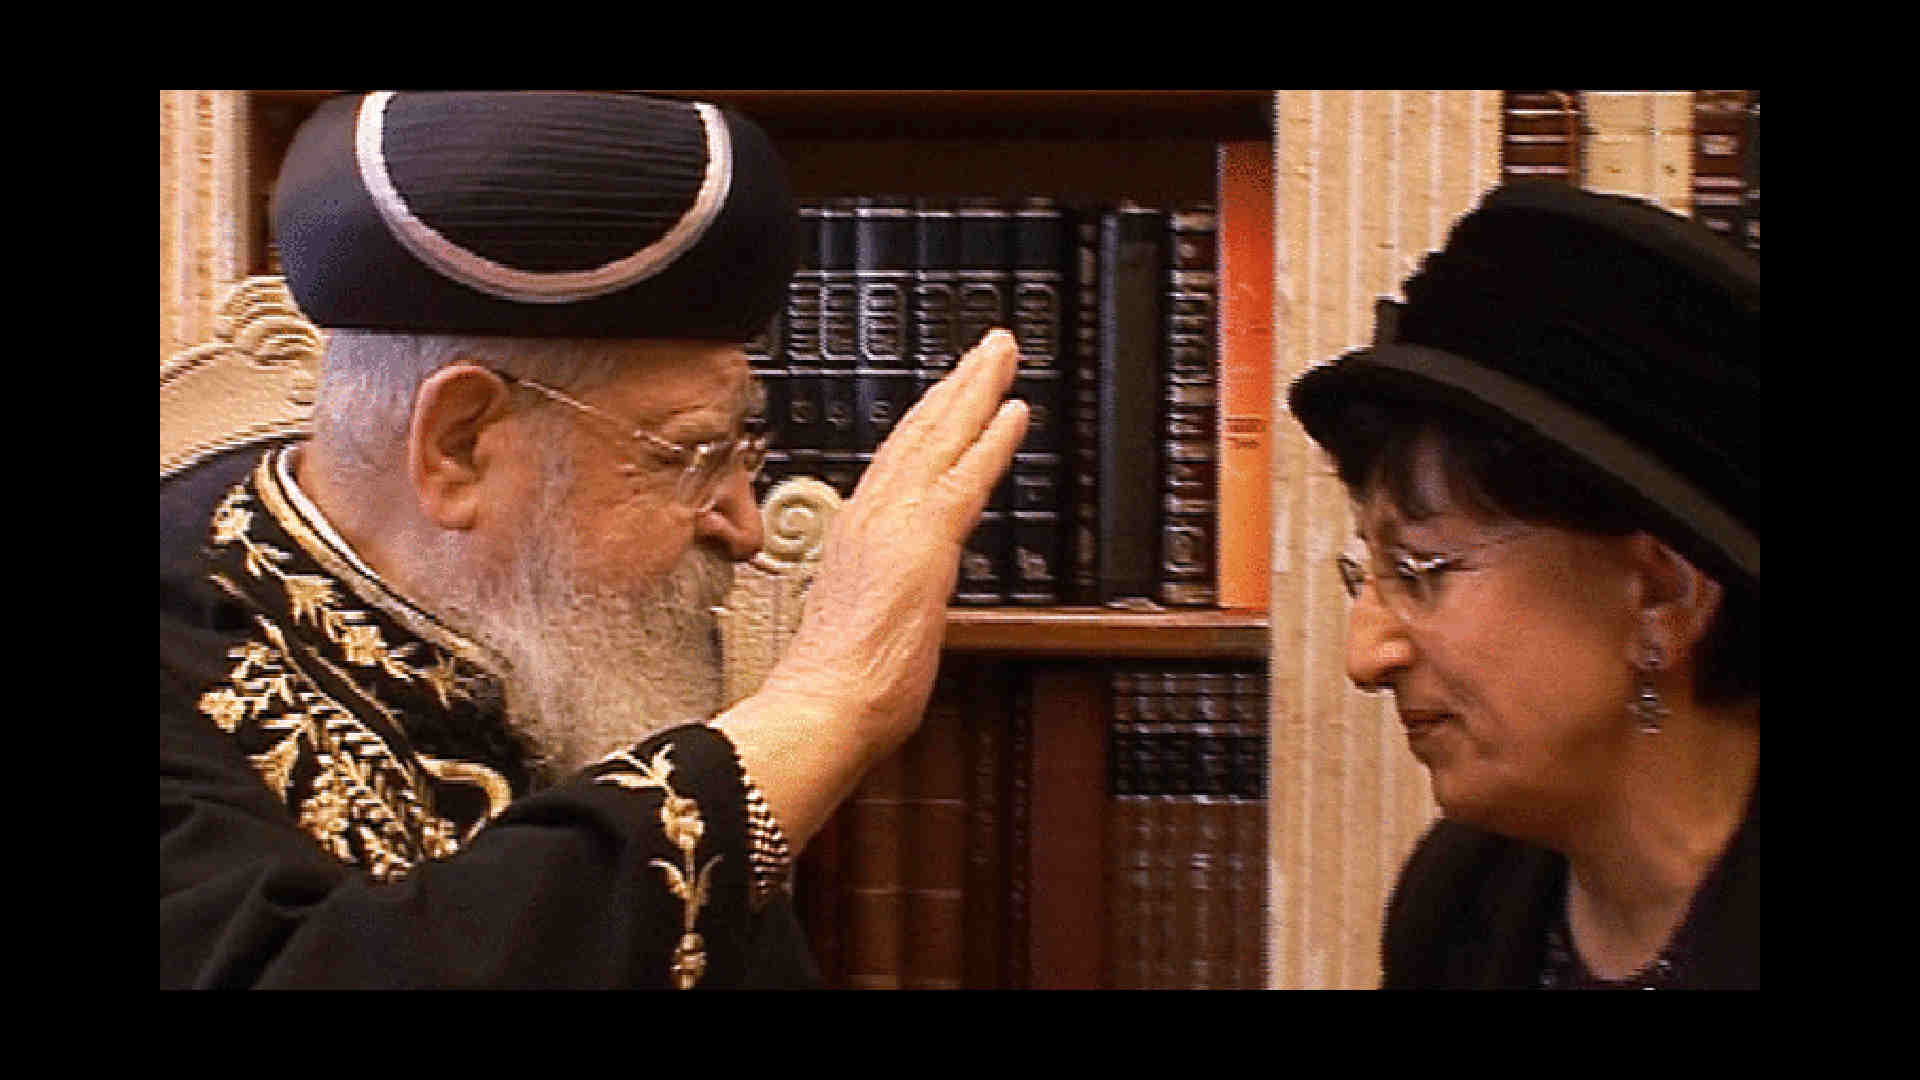 Watch Full Movie - HAREDIM - The Rabbi's Daughter & The Midwife